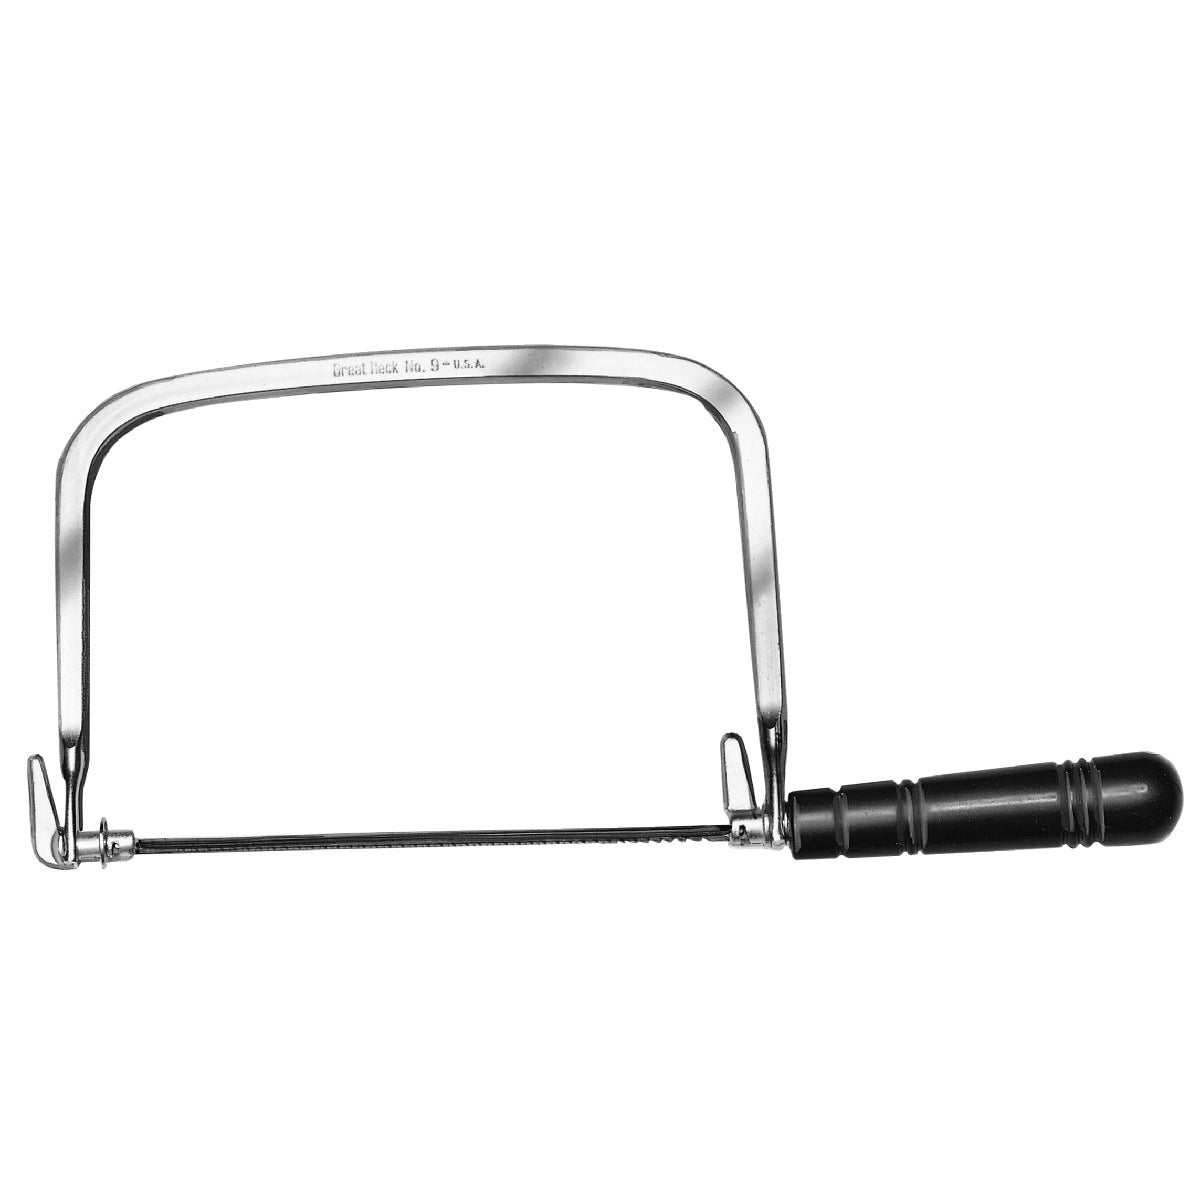 Great Neck PLASTIC COPING SAW 318454